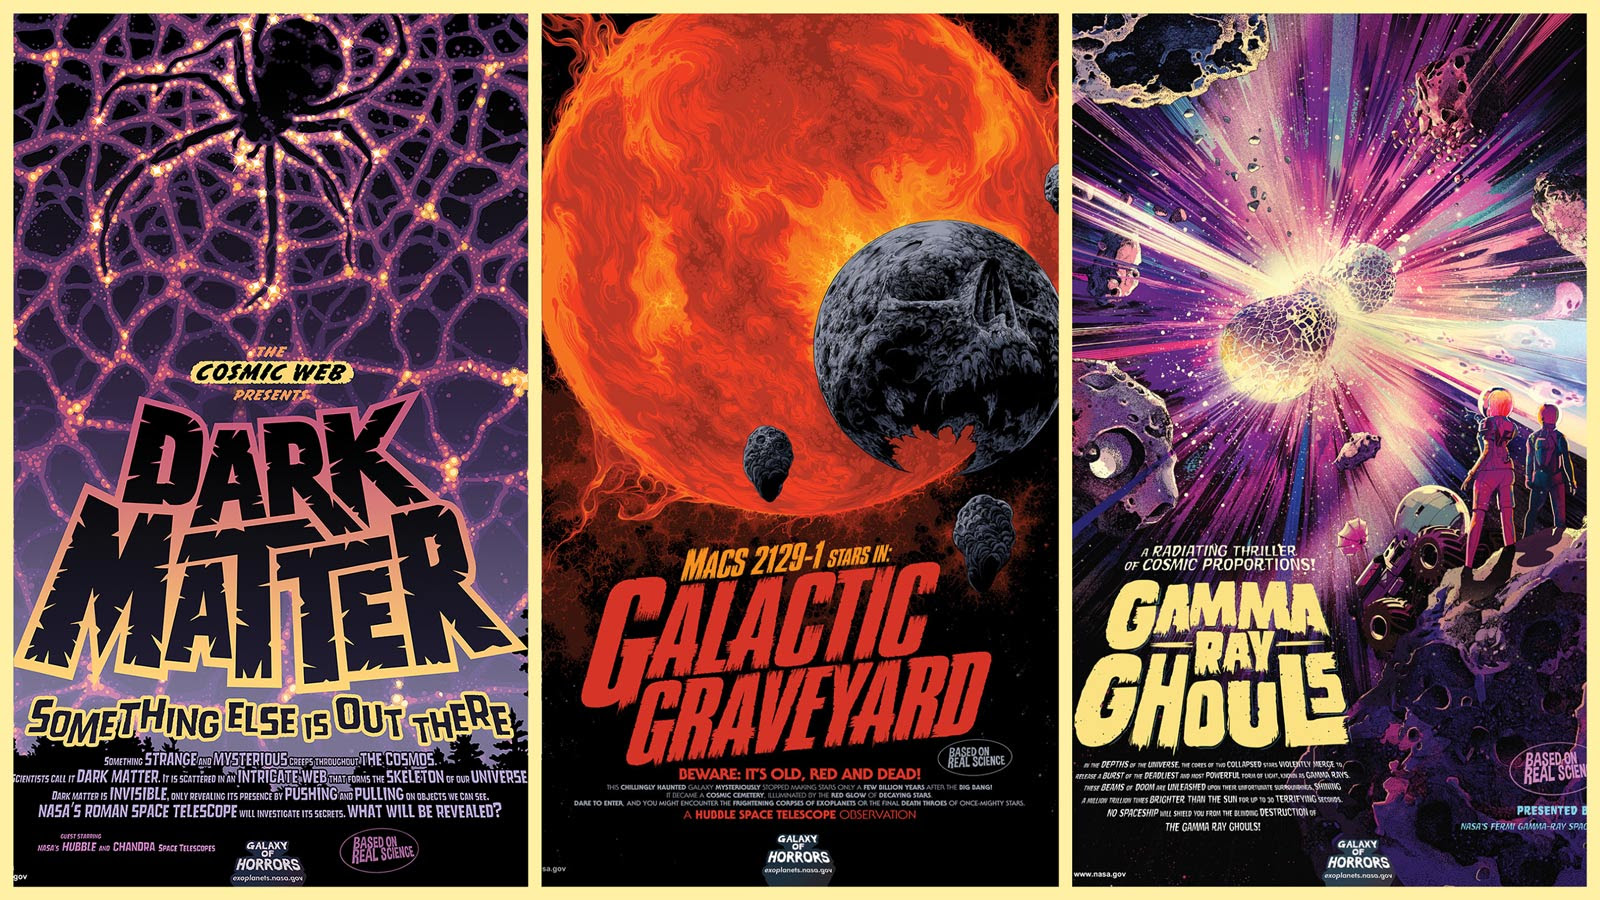 Grab these spooky (and free) NASA space posters to haunt your Halloween #rwanda #RwOT Happy Halloween